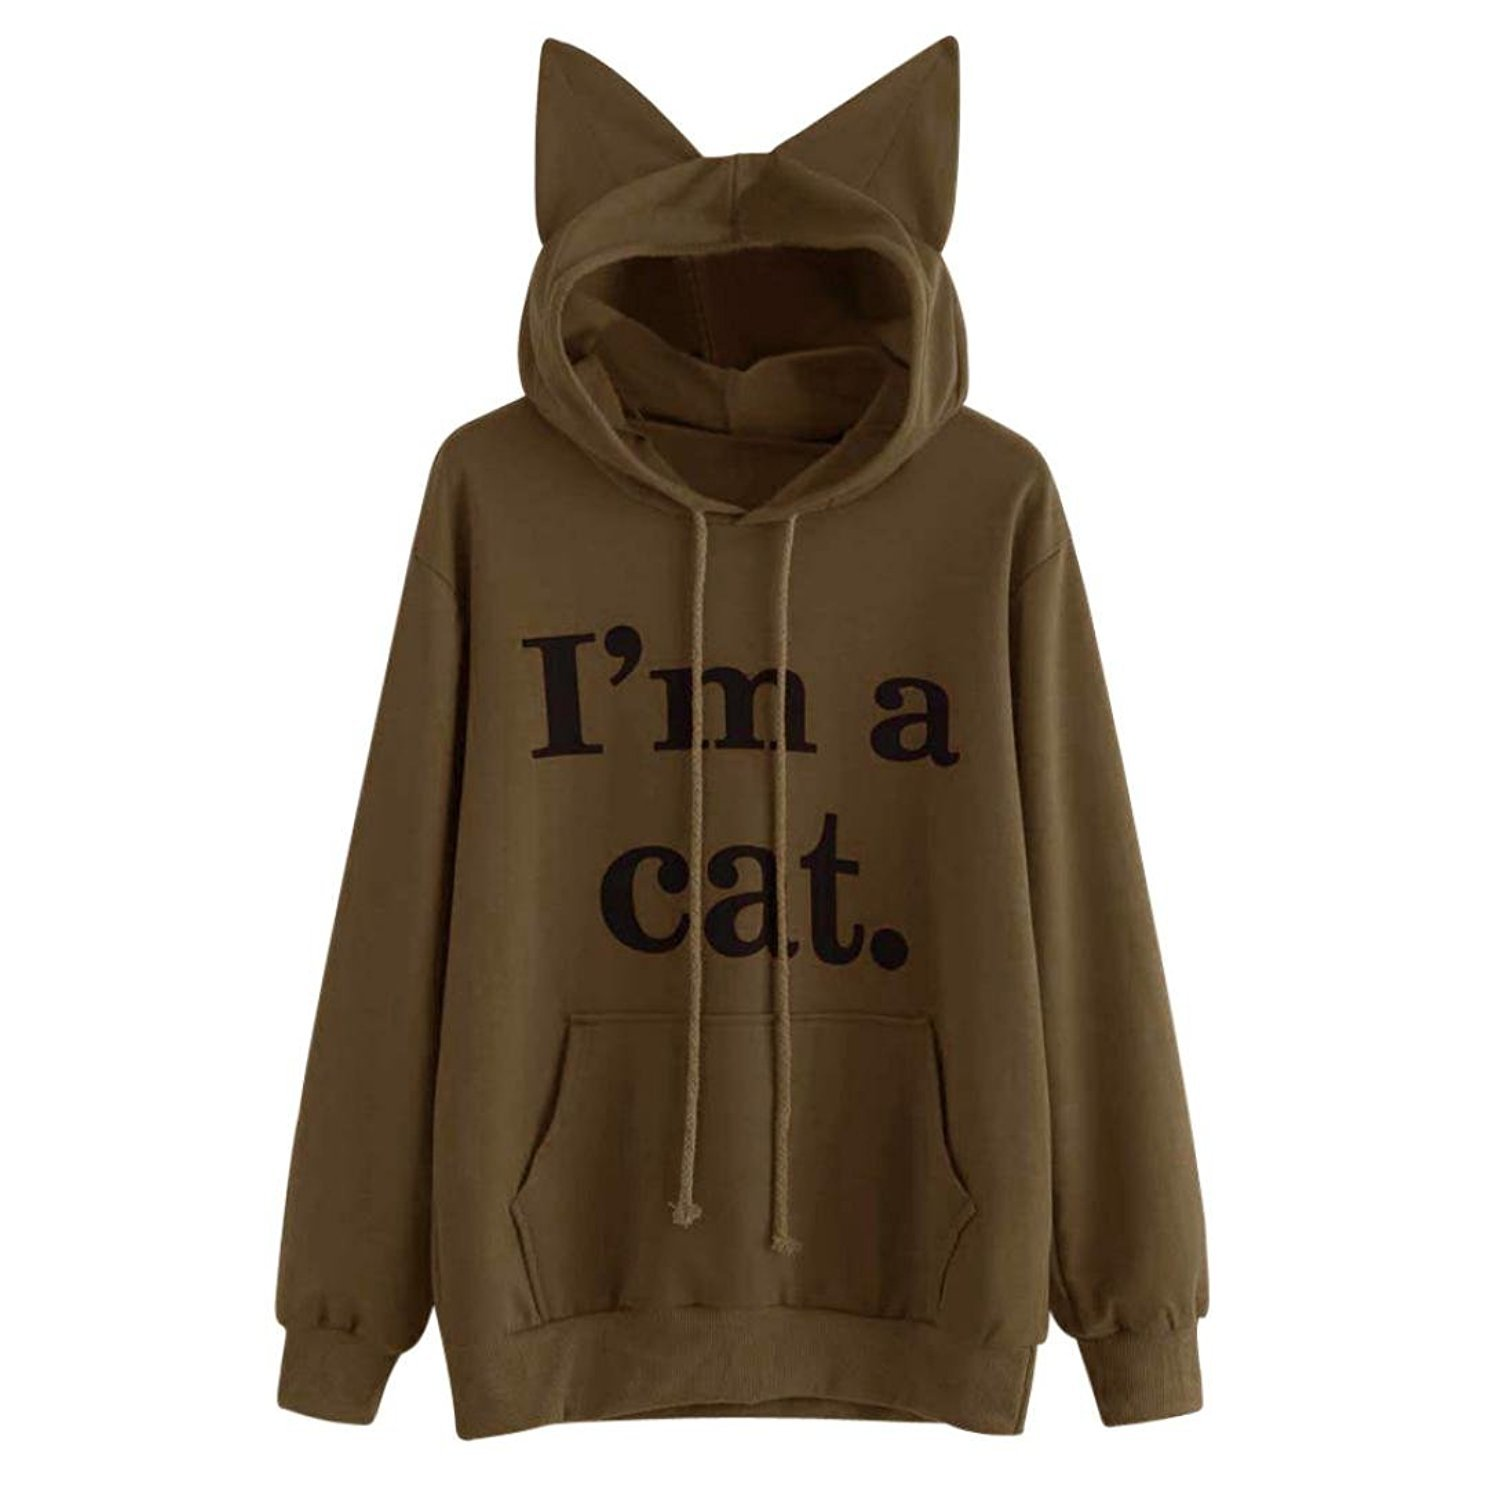 Womens Cute Hoodie Jumper Sweatshirt Mingfa Autumn Winter Letter Printed I Am a Cat Pullover Tops Blouse